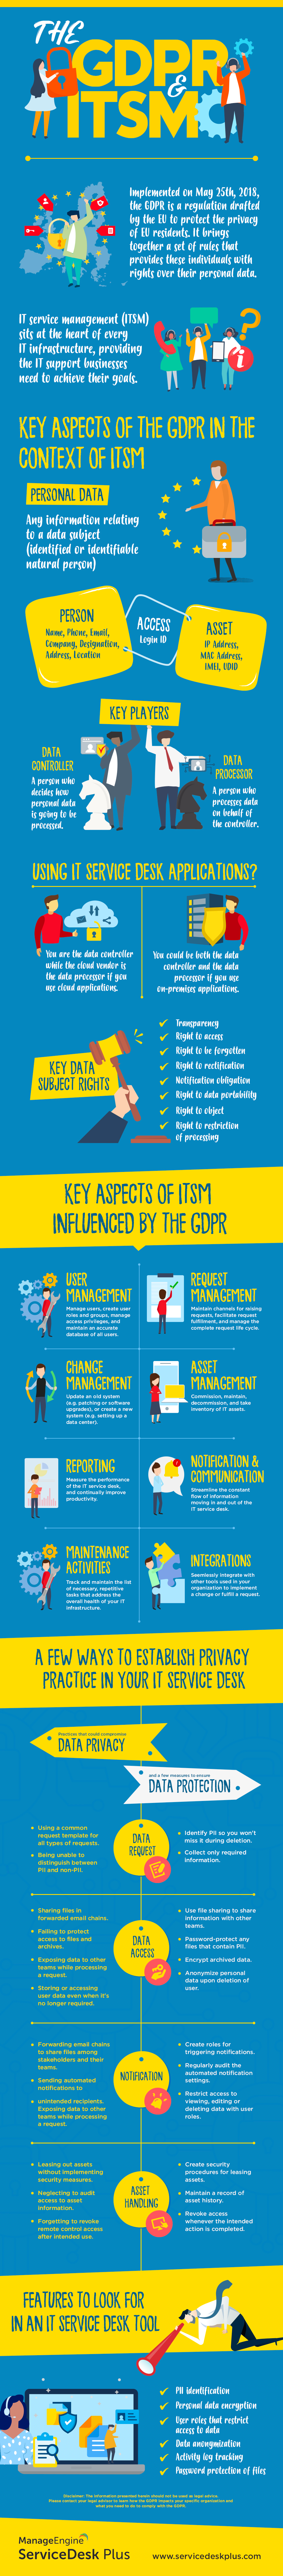 GDPR and data security in ITSM